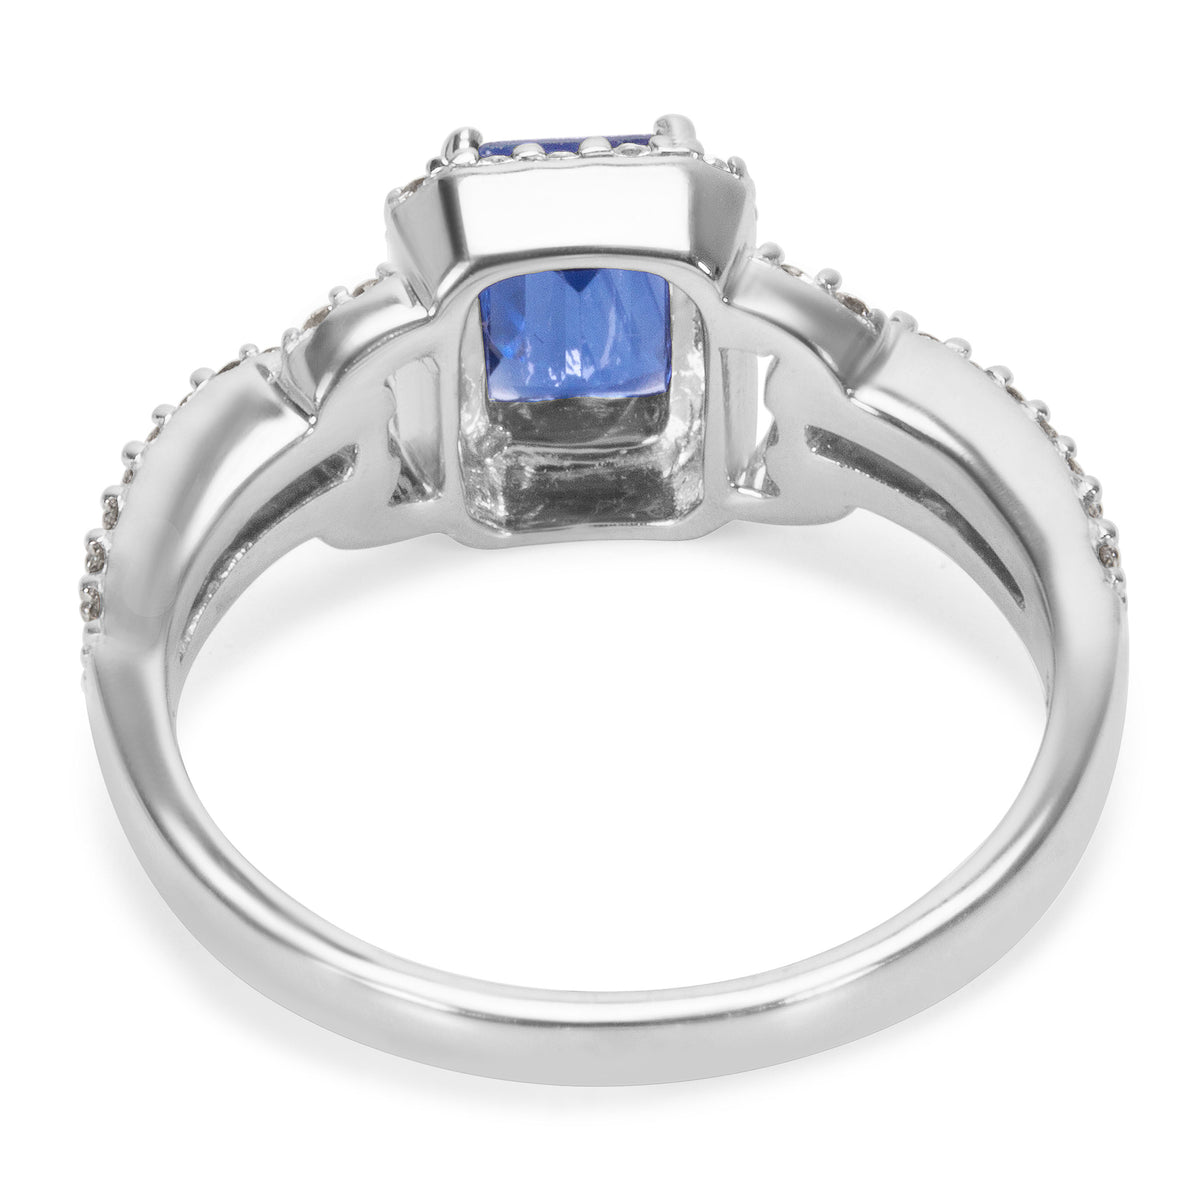 BRAND NEW Sapphire and Diamond Vintage Style Ring in 14K White Gold (0.38 CTW)